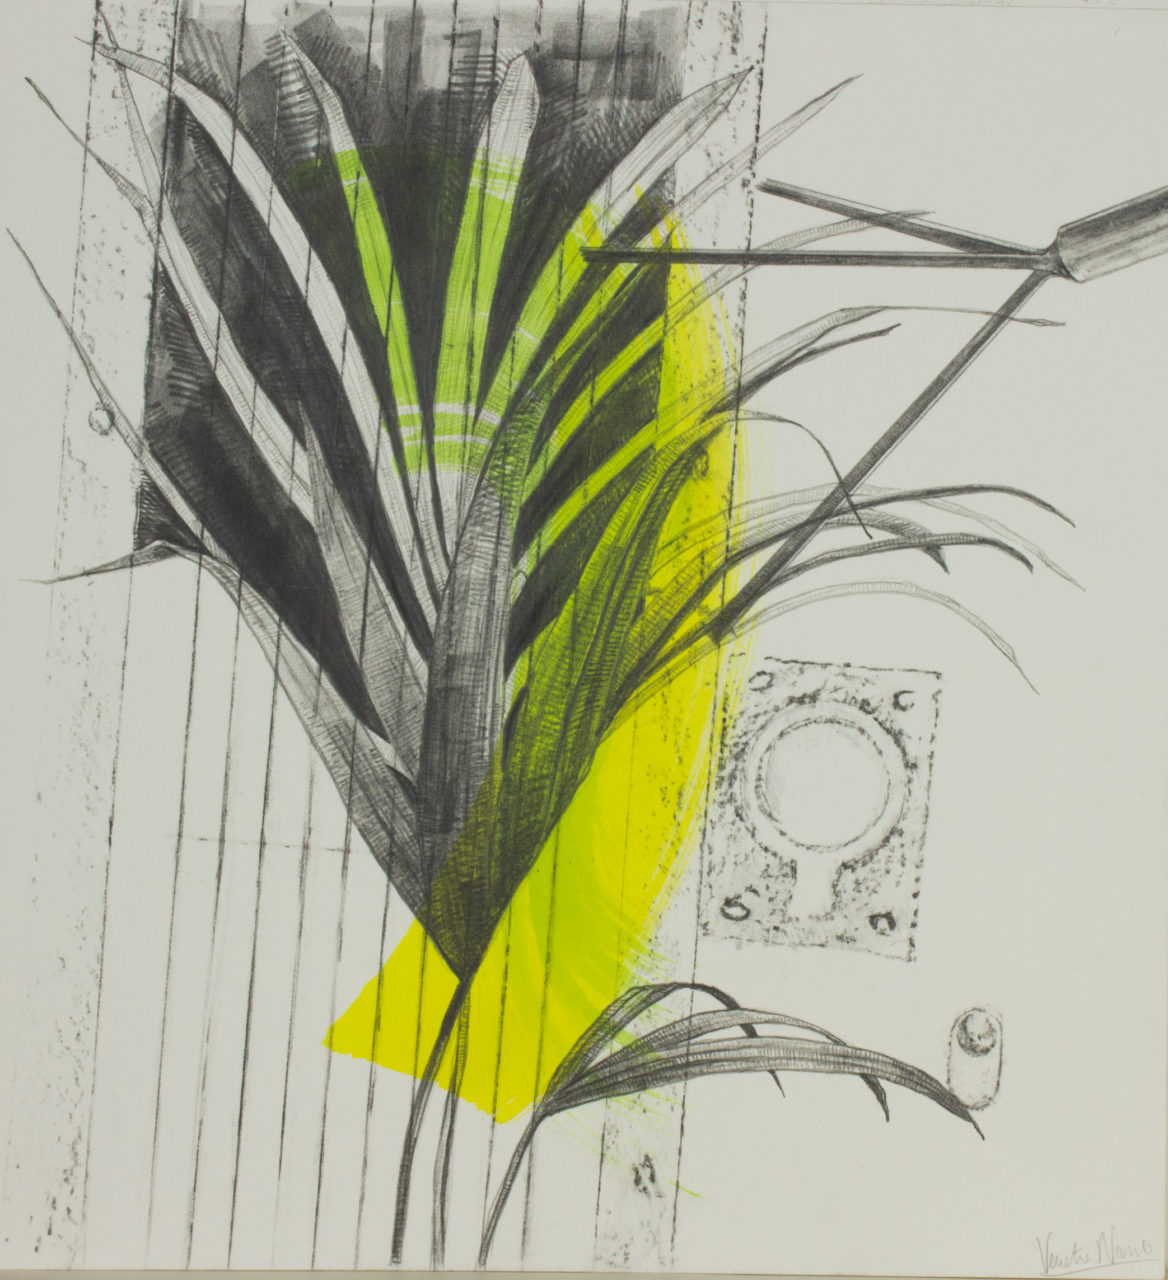 Sounds of dawn, graphite and paint on board, 38.2 x 35.4 cm, £725